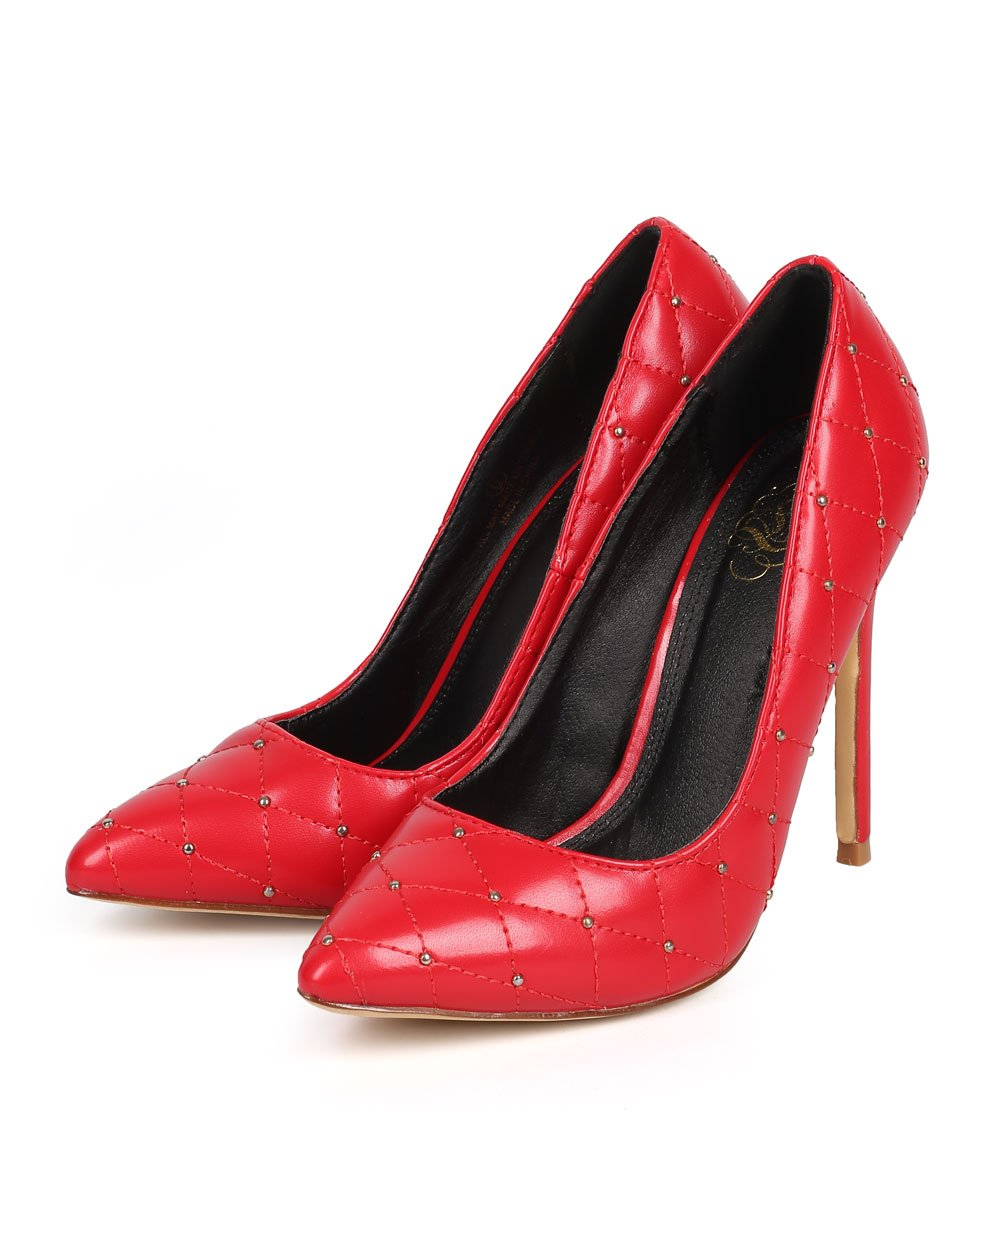 Miss L Women Quilted Leatherette Pointy Toe Studded Stiletto Pump DA70 - Red (Size: 9.0) by Miss L (Image #5)